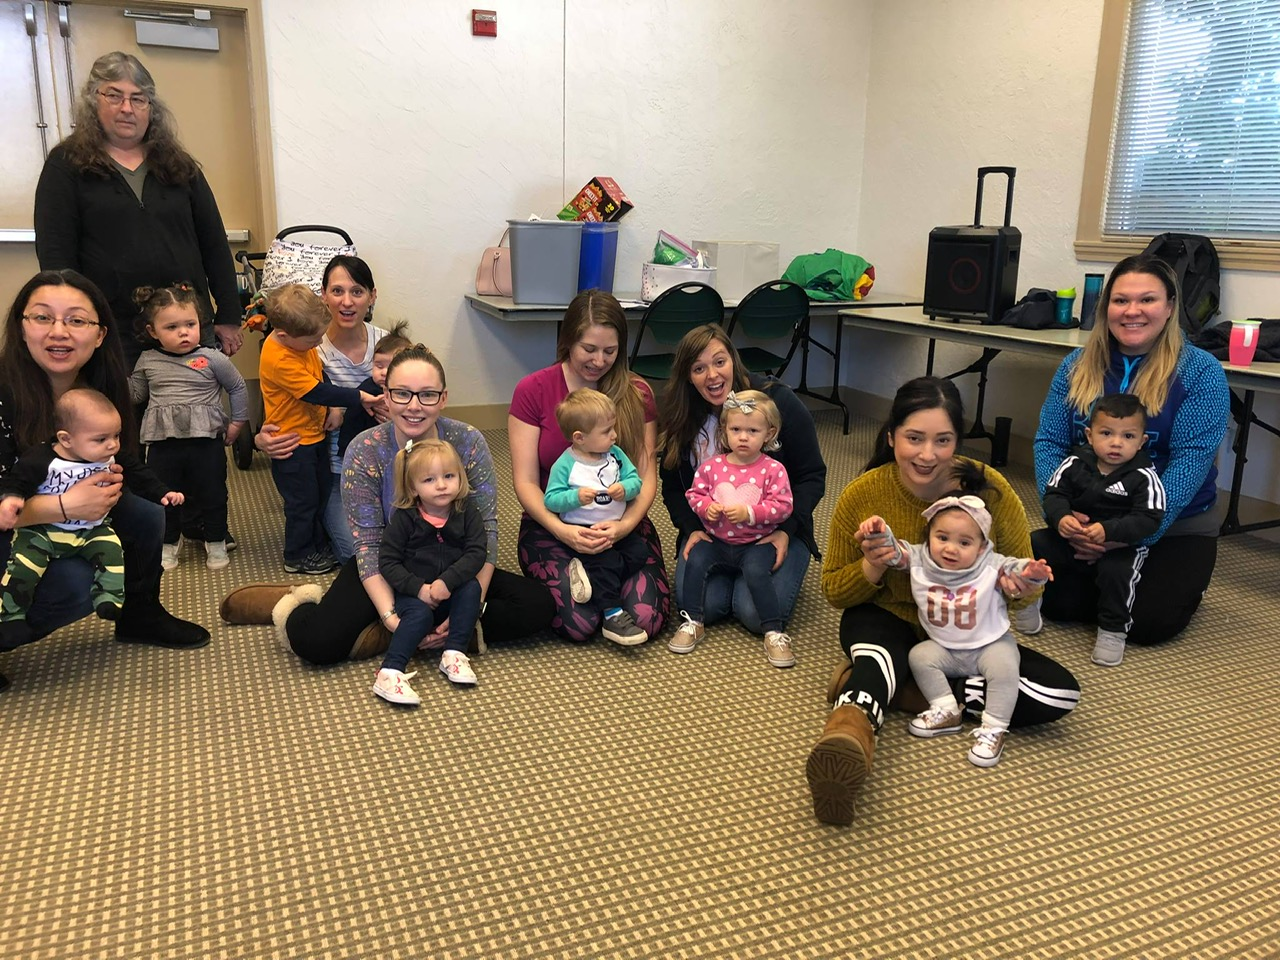 We provided 20 registered families FREE (Exploratory Moves™) classes for 10 weeks during the spring of 2019 at the Veterans Hall in Hollister, CA.